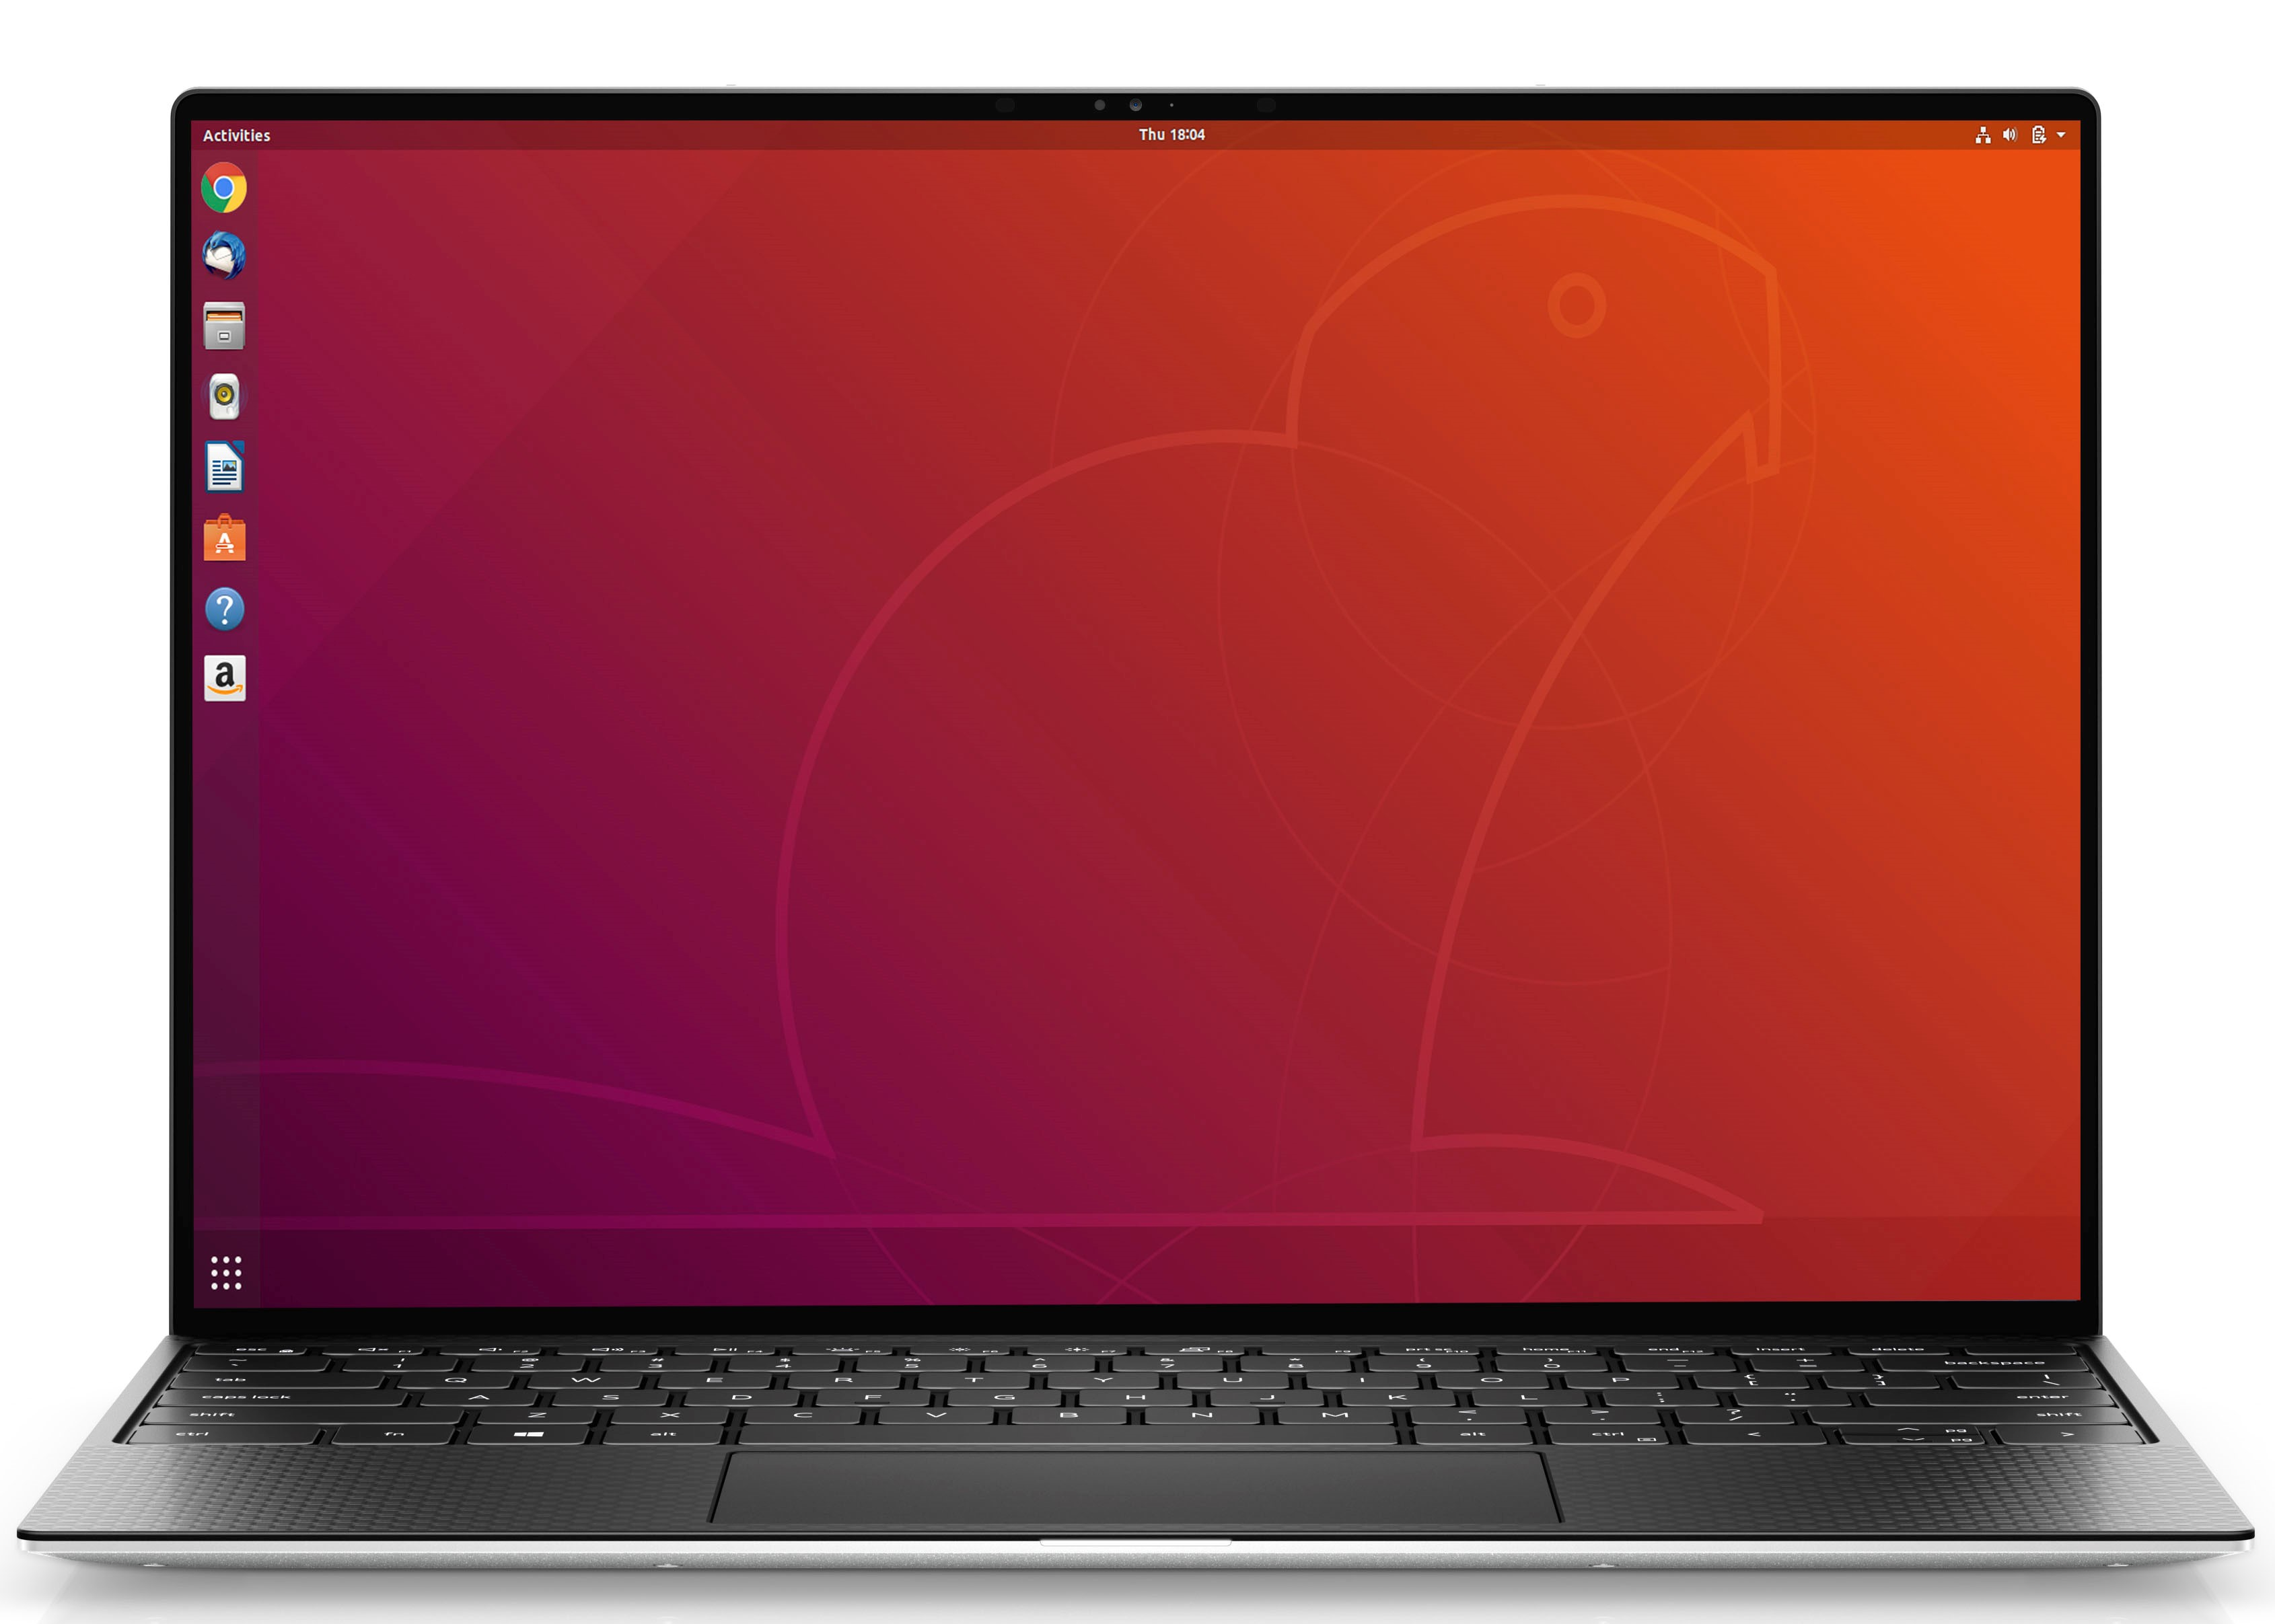 CES 2020- First Look At Dell XPS 13 And Latitude 9510 Laptops